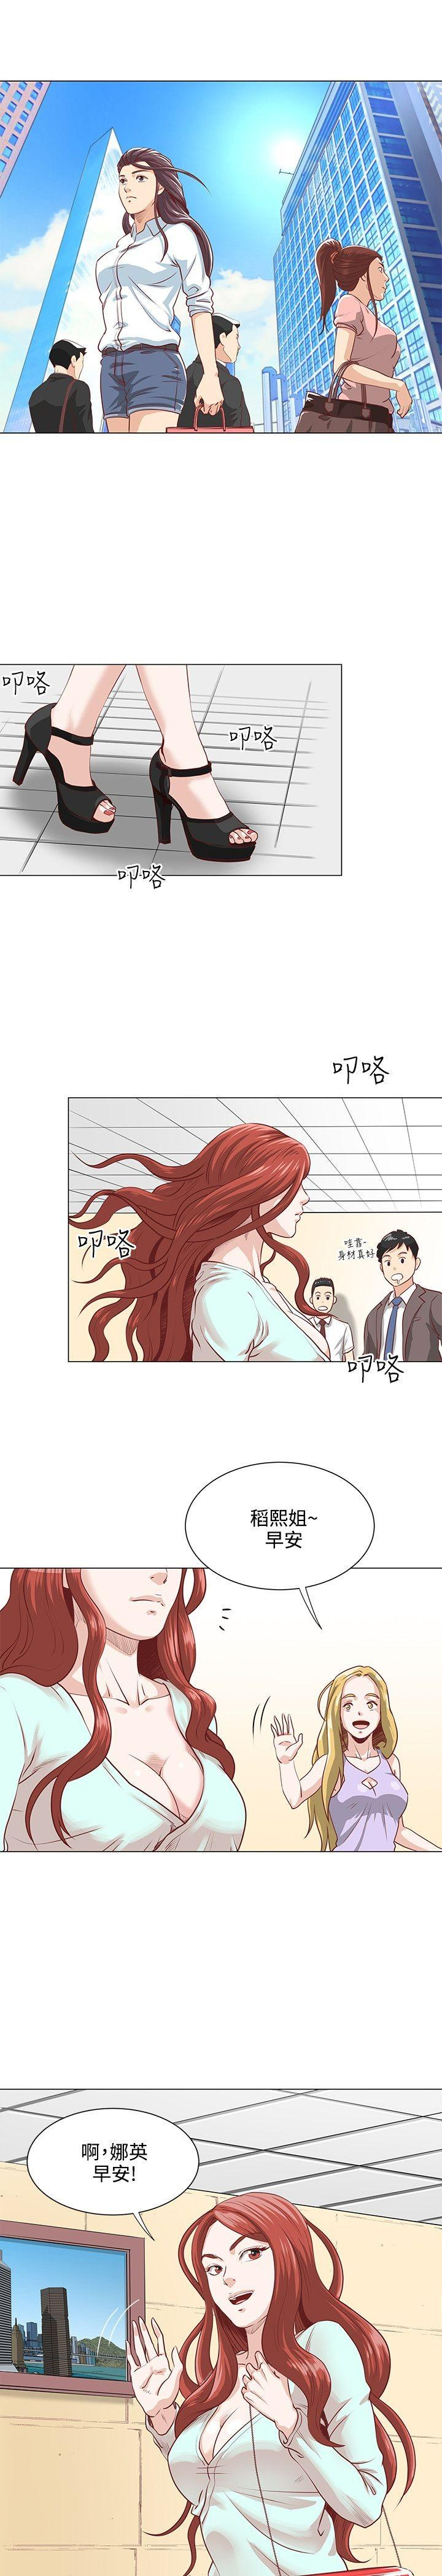 OFFICE TROUBLE 25